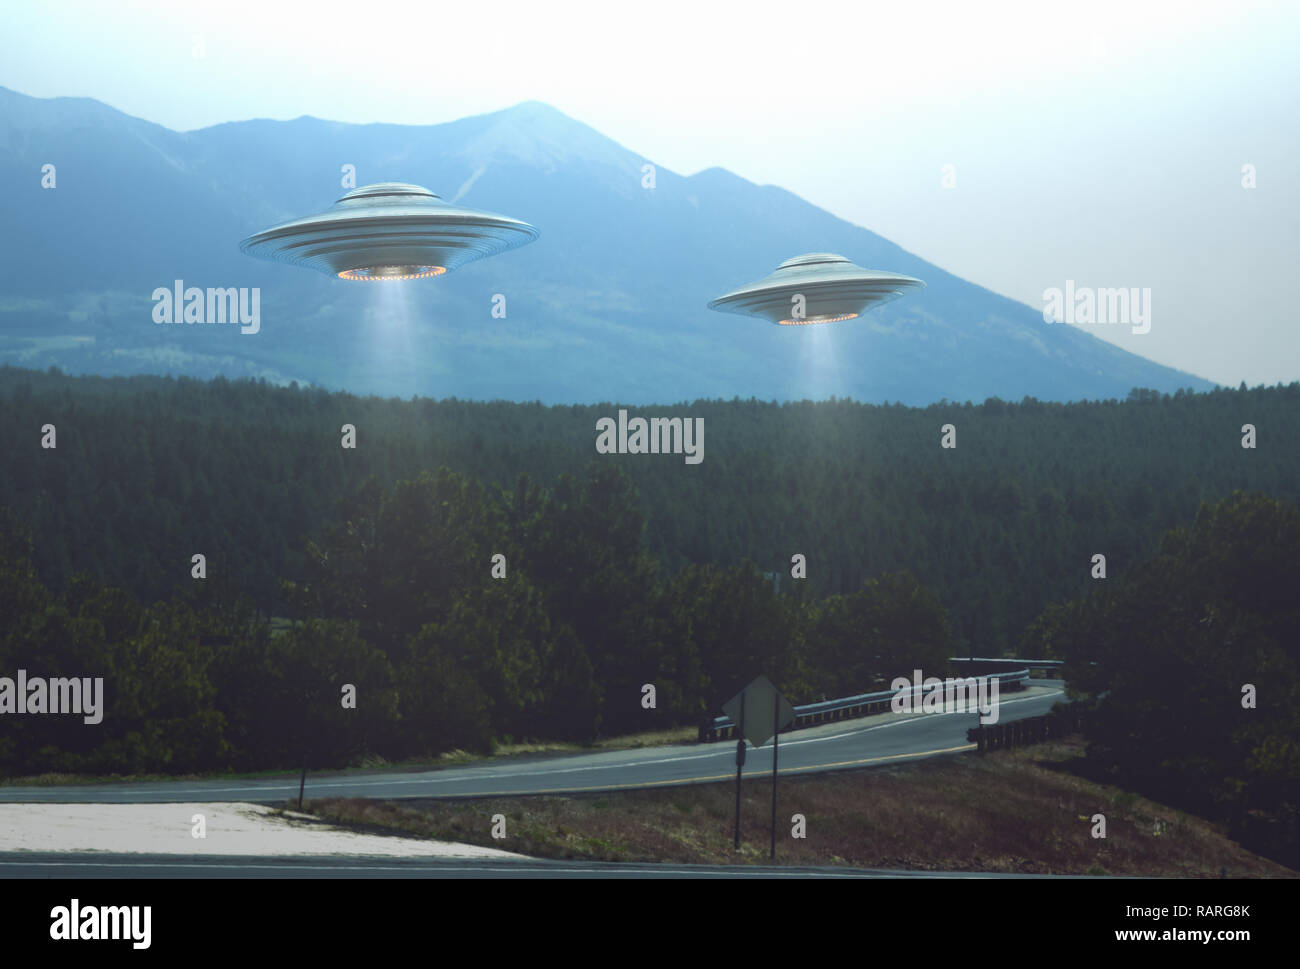 Unidentified flying object. Two UFOs flying over a road among the trees. 3D illustration. - Stock Image